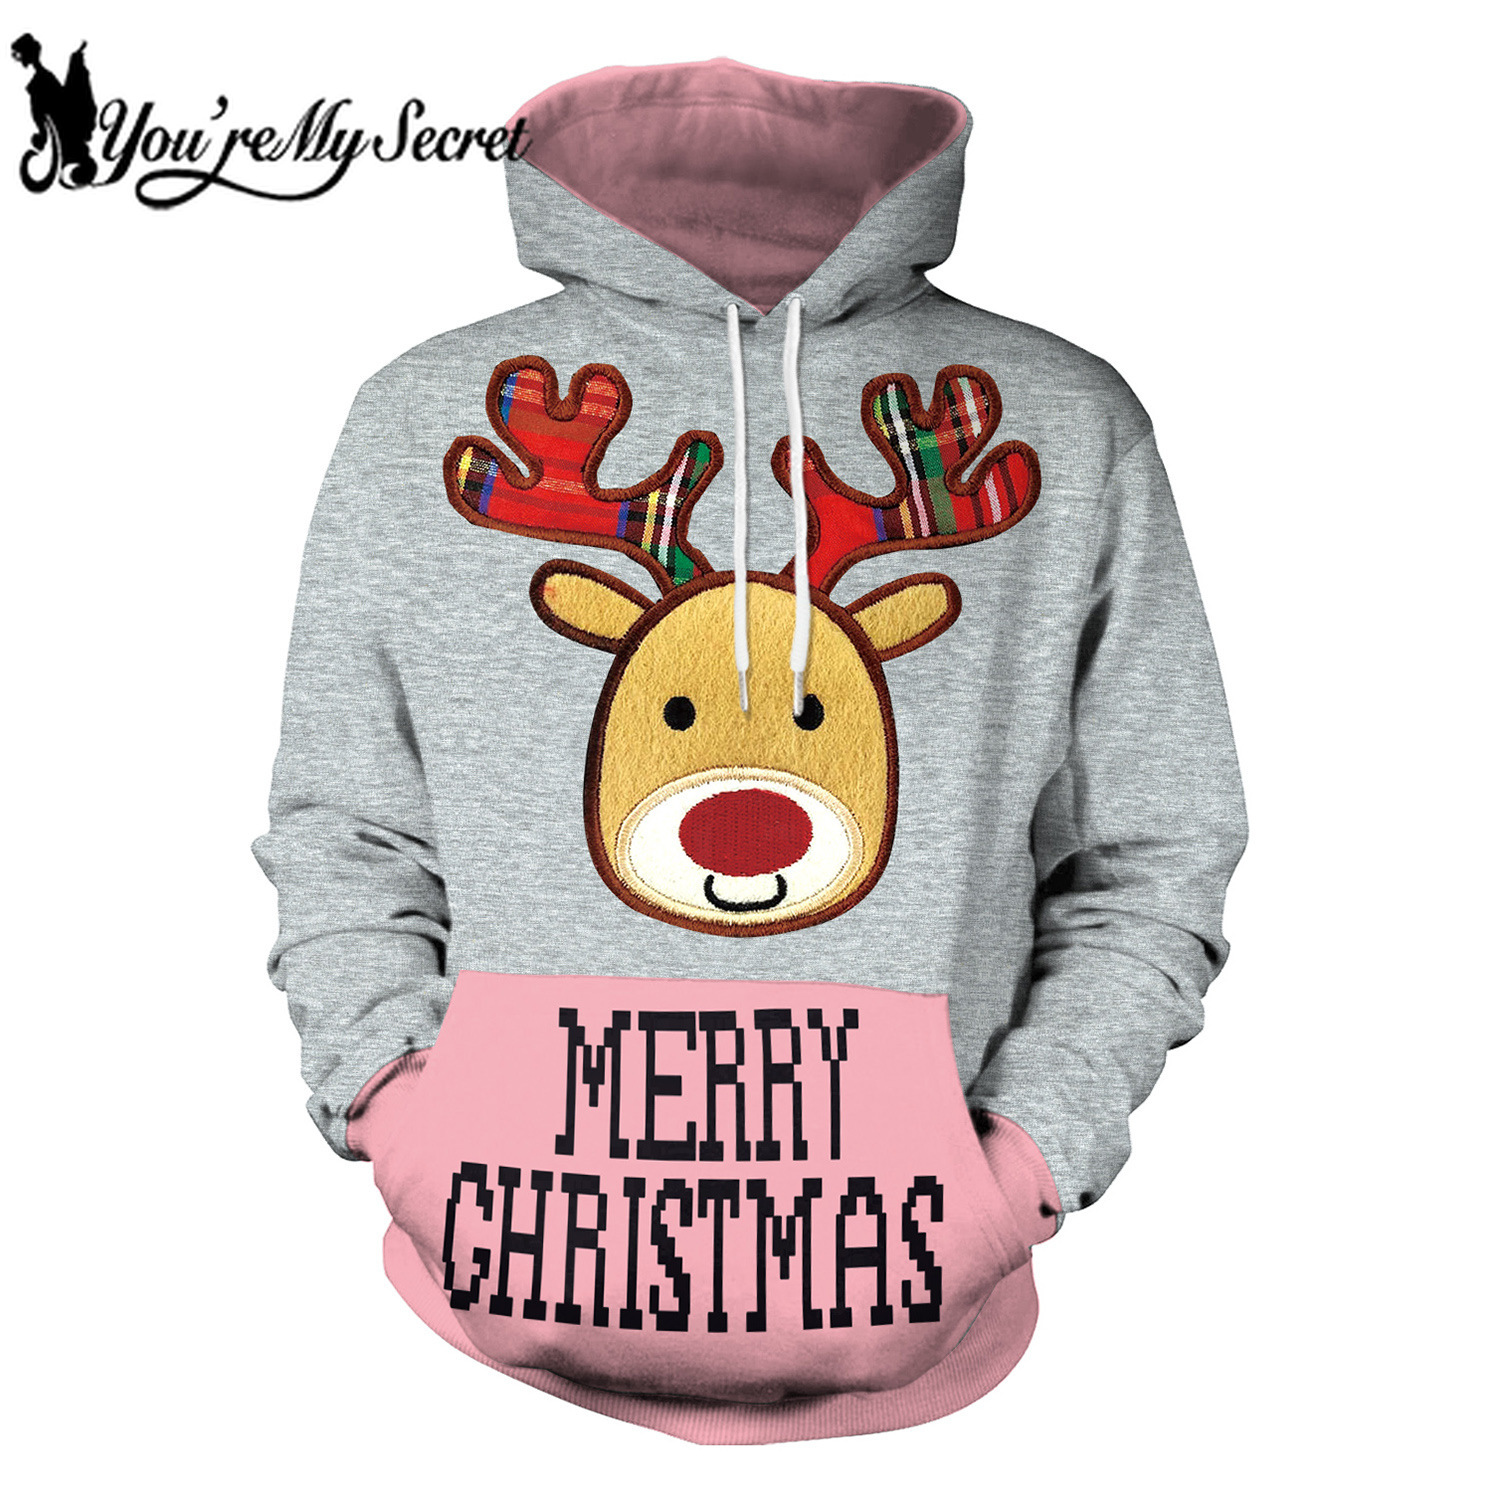 [You're My Secret] 2019 New Arrival Winter Merry Christmas Deer Cartoon Unisex Hooded Sweatshirts Hoodie for Women and Men